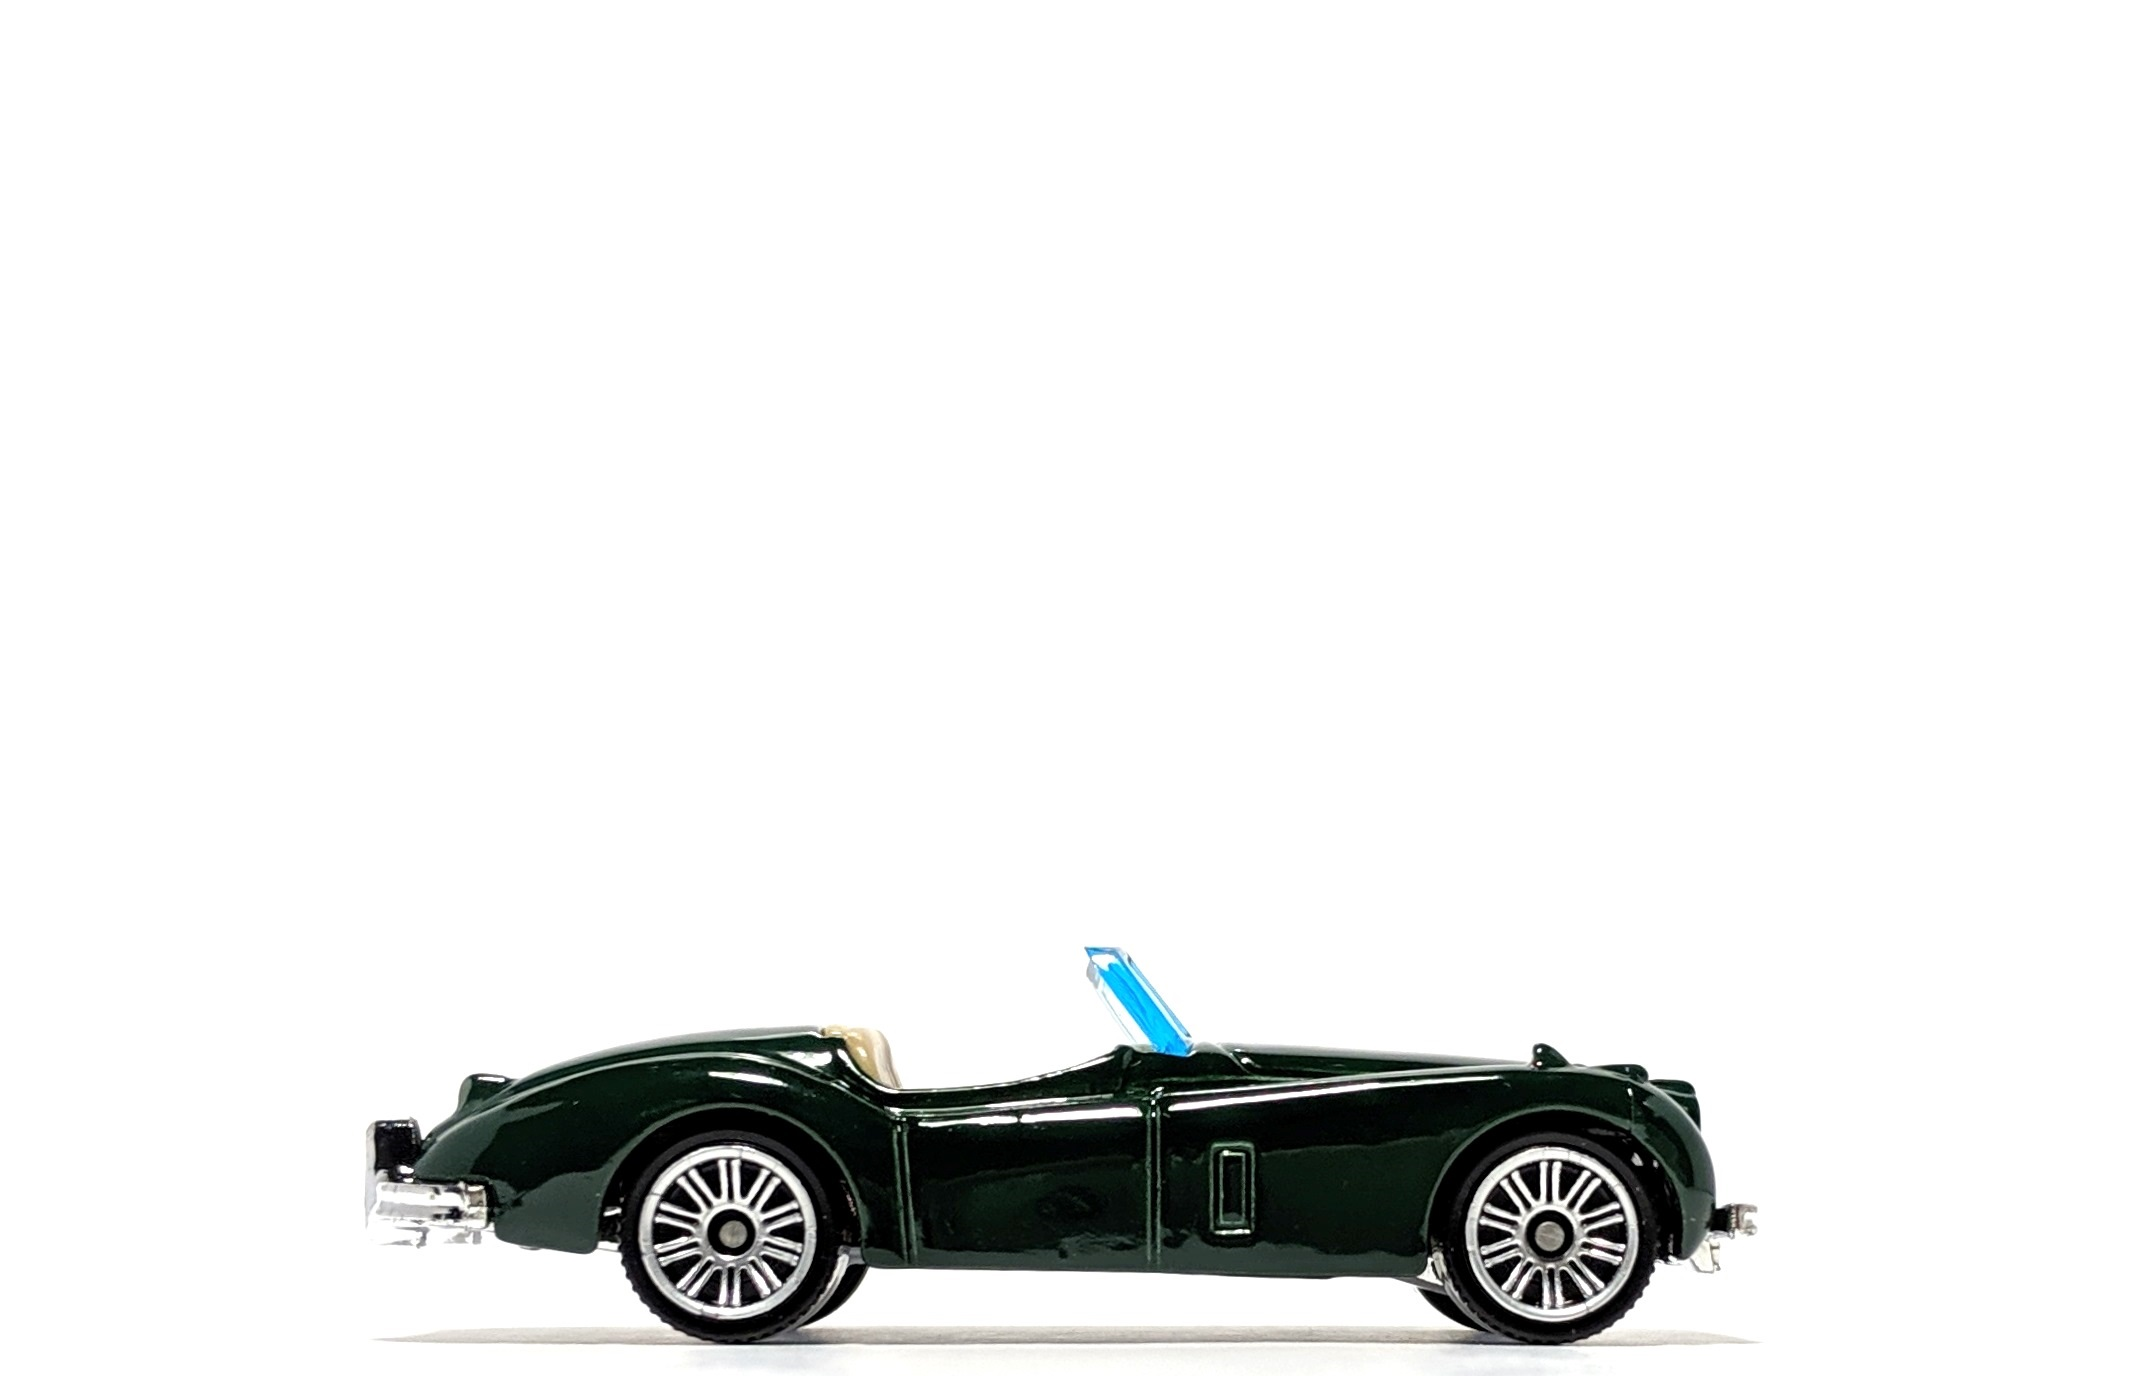 '56 Jaguar XK140 Roadster, by Matchbox